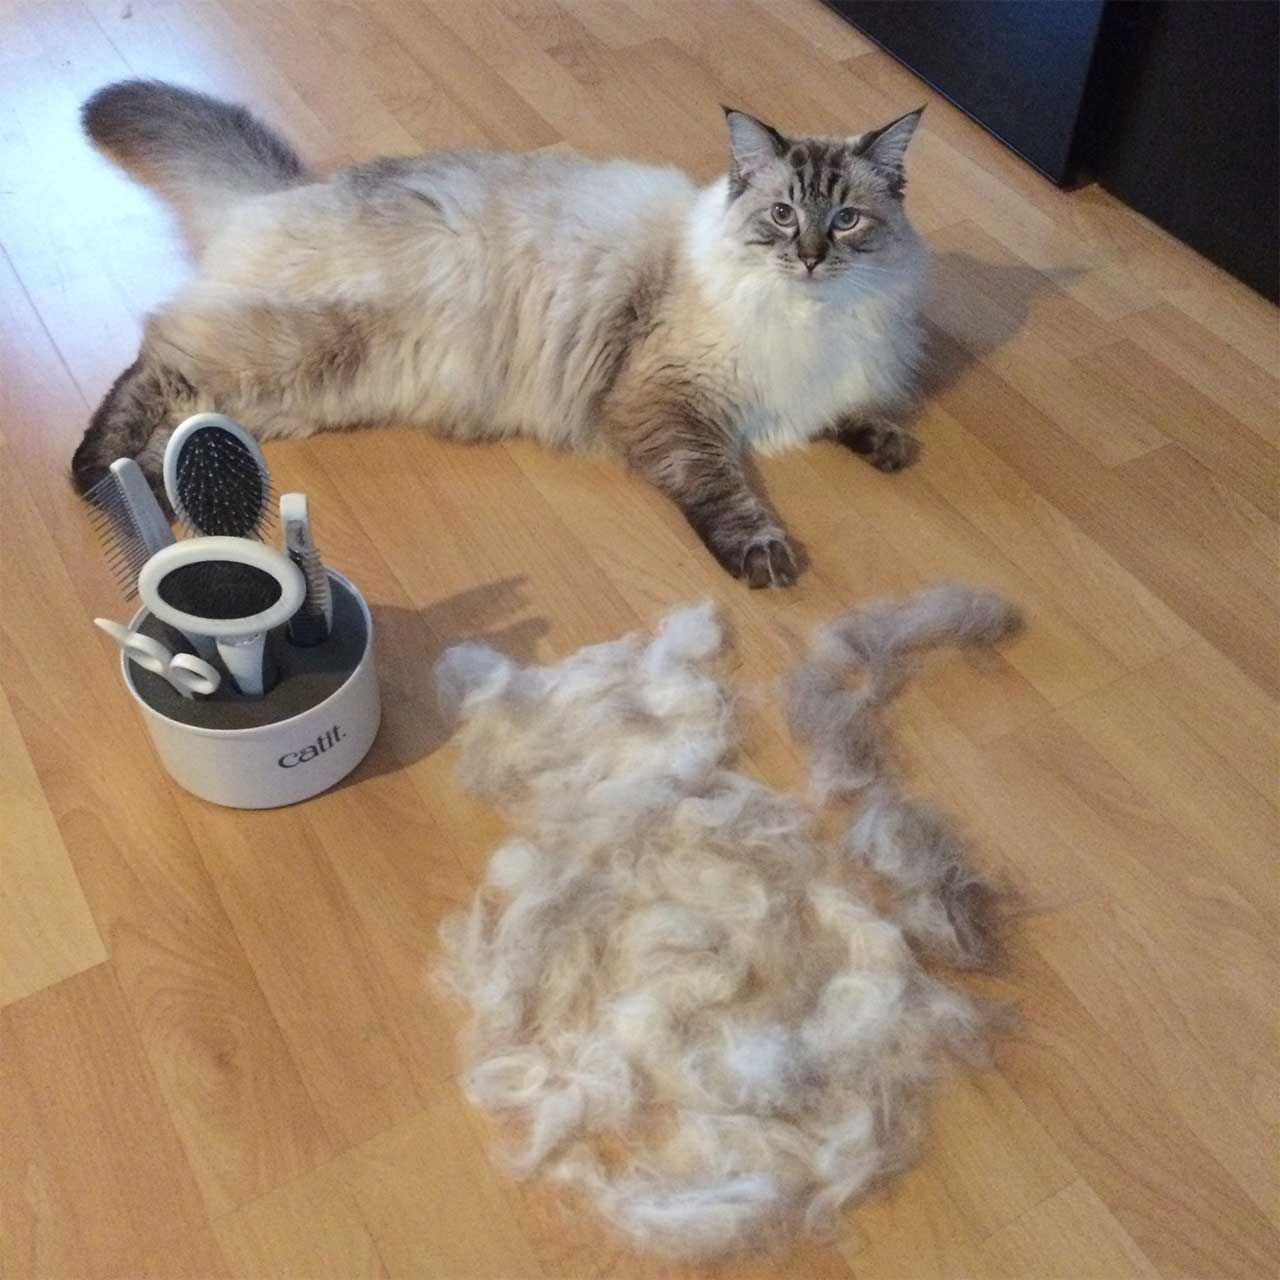 Cat after being groomed by the grooming kit